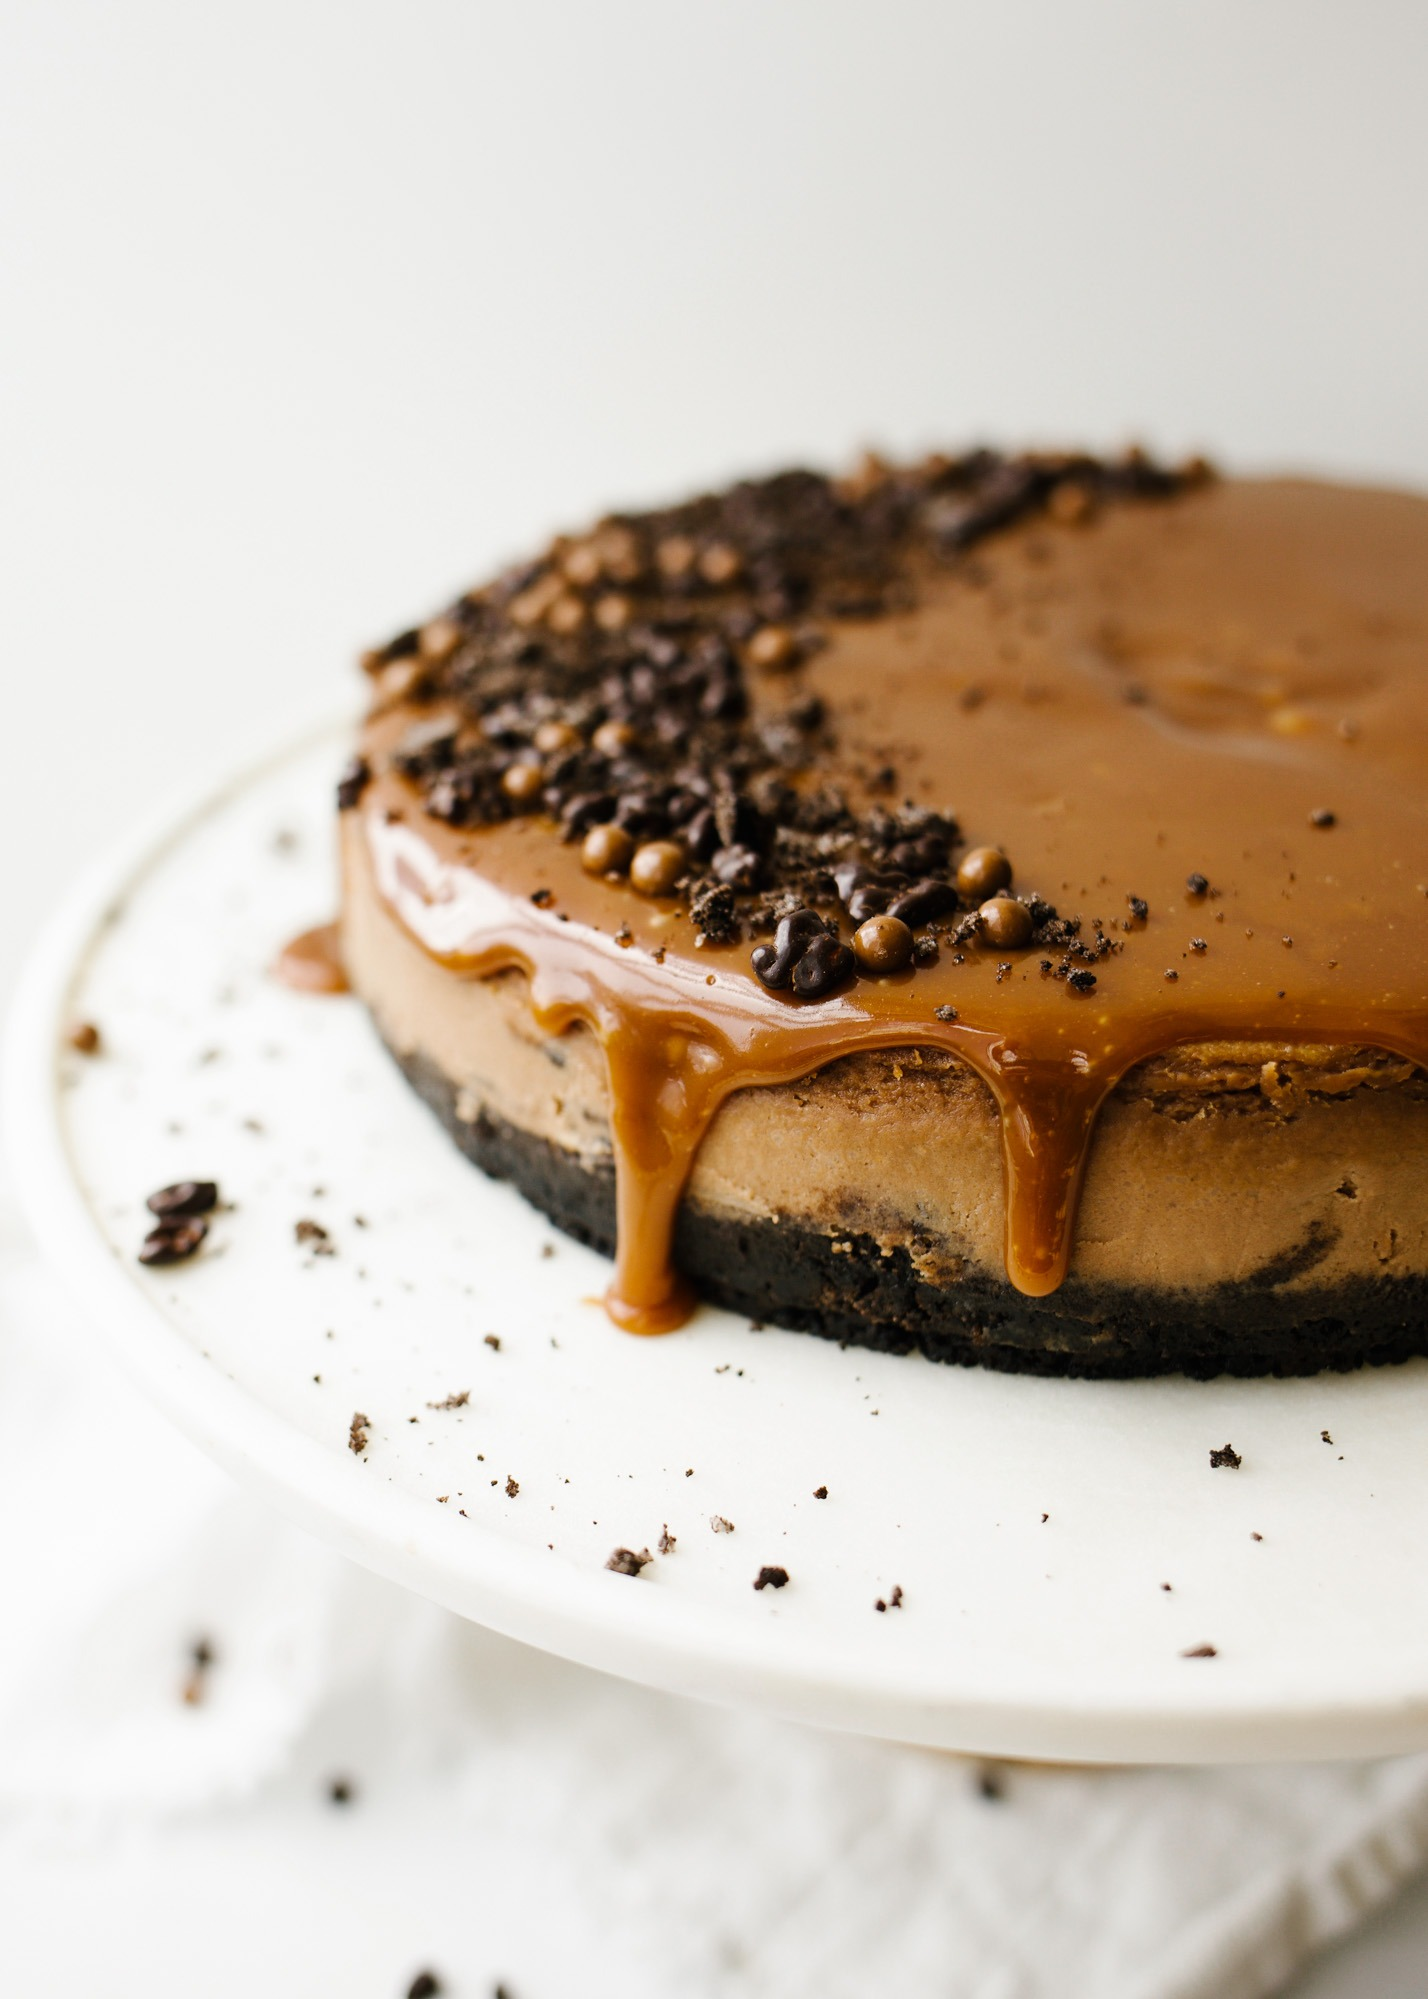 Chocolate Mascarpone Cheese by Wood and Spoon blog. This is a creamy chocolate cheesecake made with mascarpone cheese, a chocolate sandwich cookie Oreo crust, and a rich caramel topping. The crust is scented with espresso powder and lends a buttery crunch to the otherwise smooth dessert. This is a decadent treat for chocolate lovers and a great alternative to a cream cheese cheesecake. Learn how to make it on thewoodandspoon.com